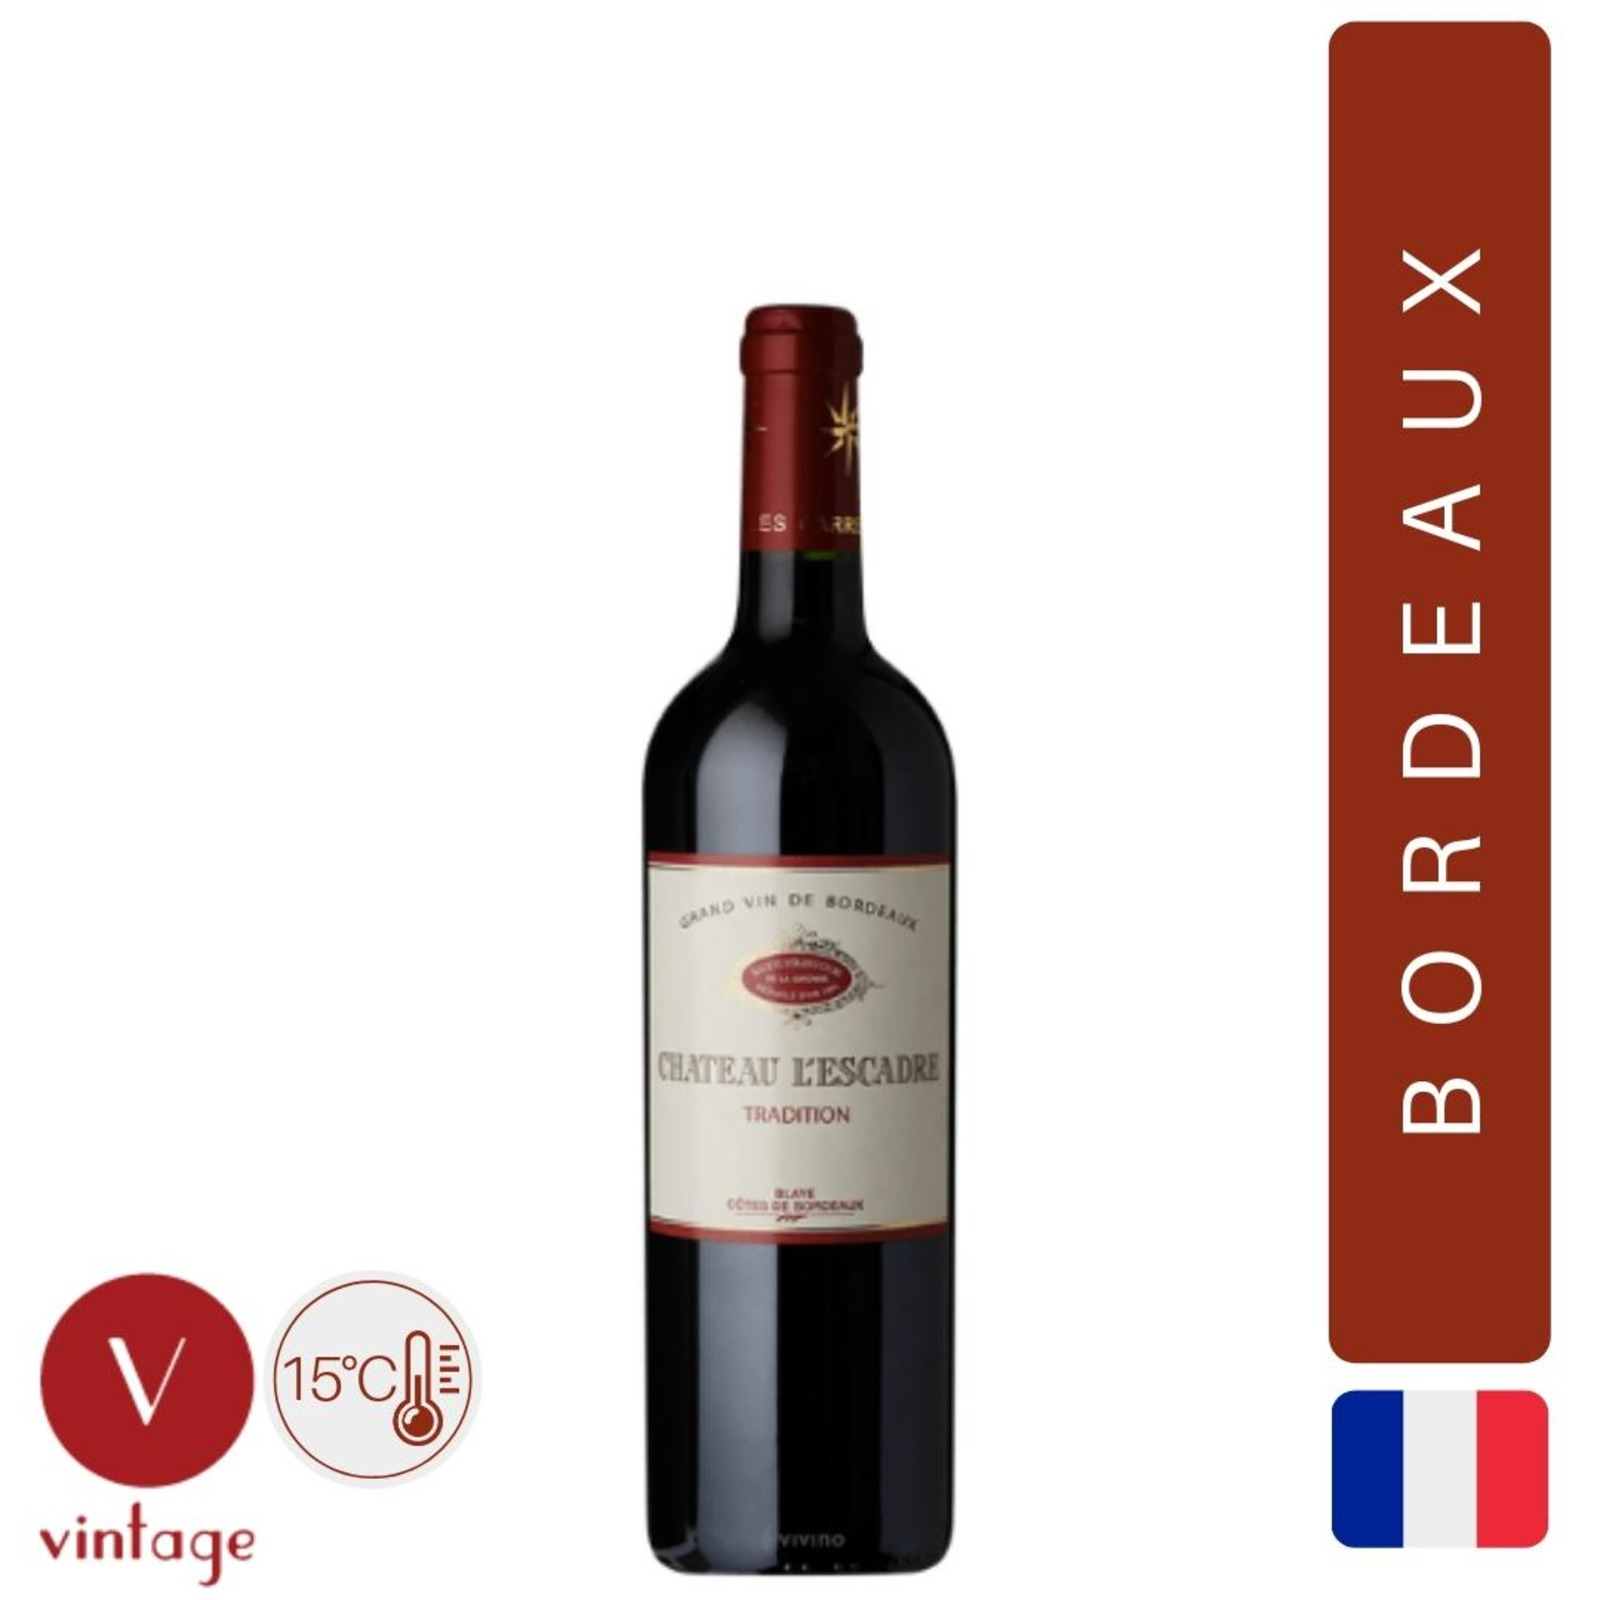 Chateau L'Escadre - Tradition - Half bottle - Red Wine